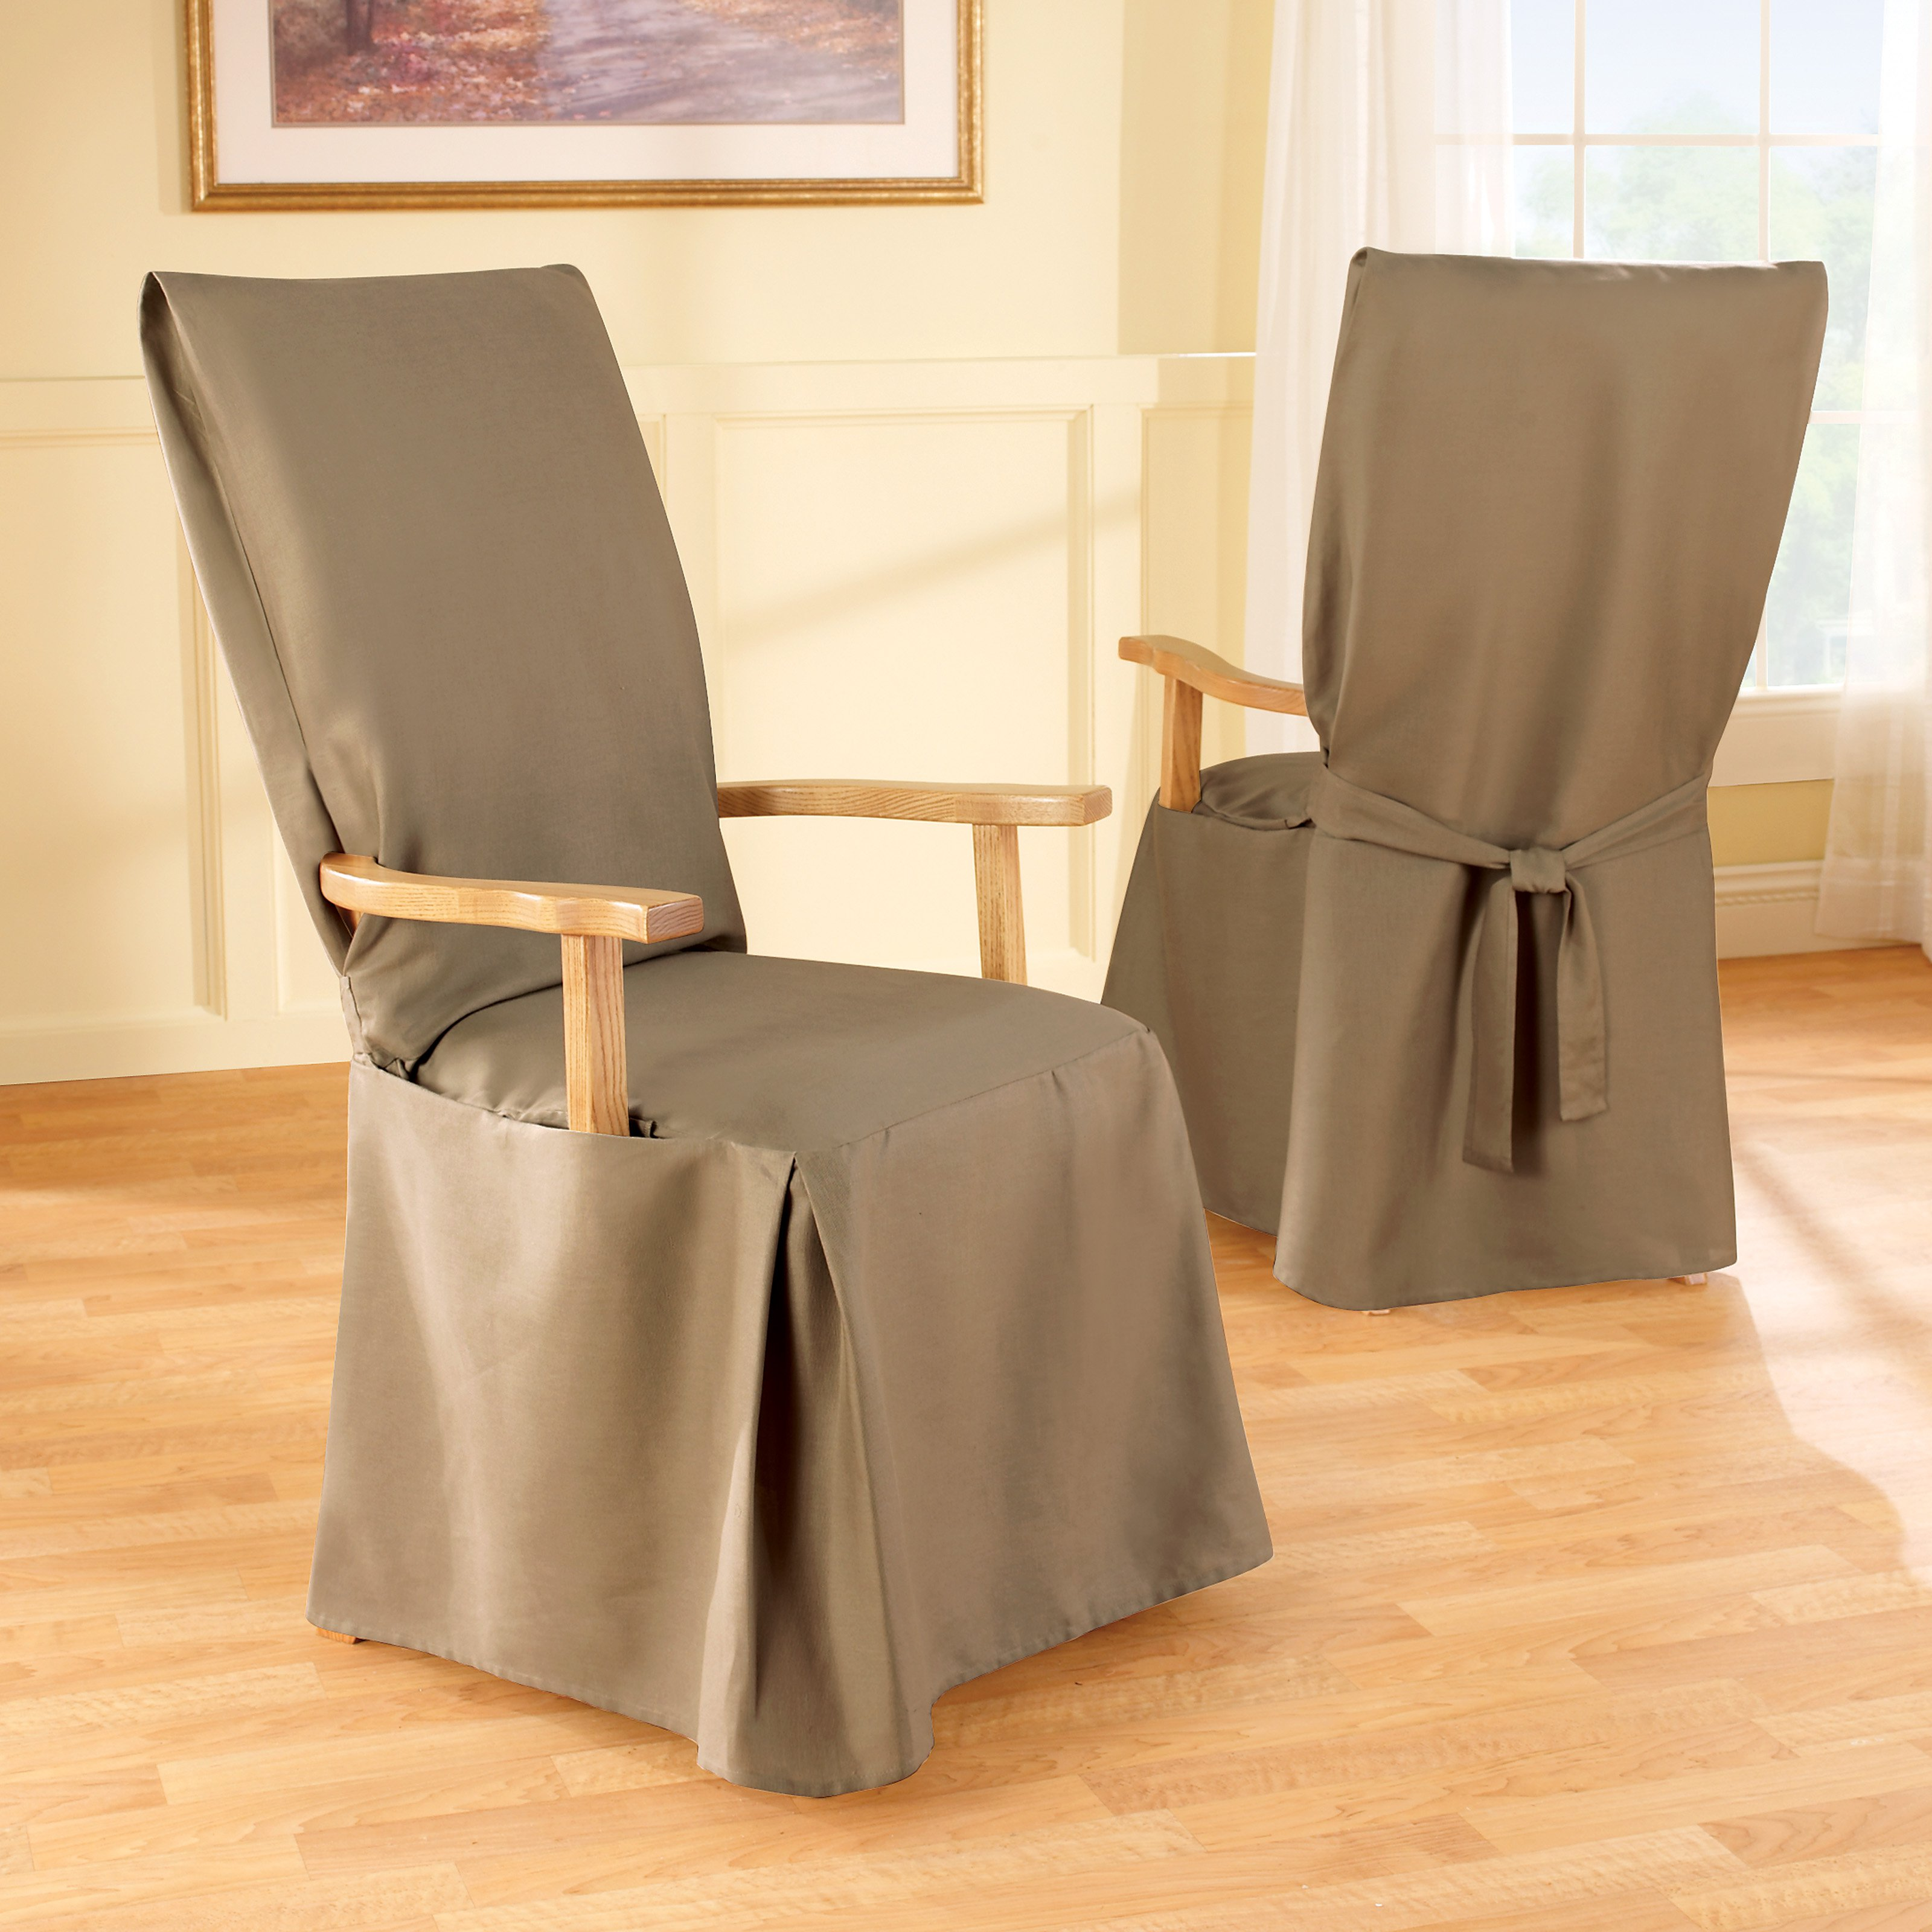 chair covers for dining room chairs photo - 2